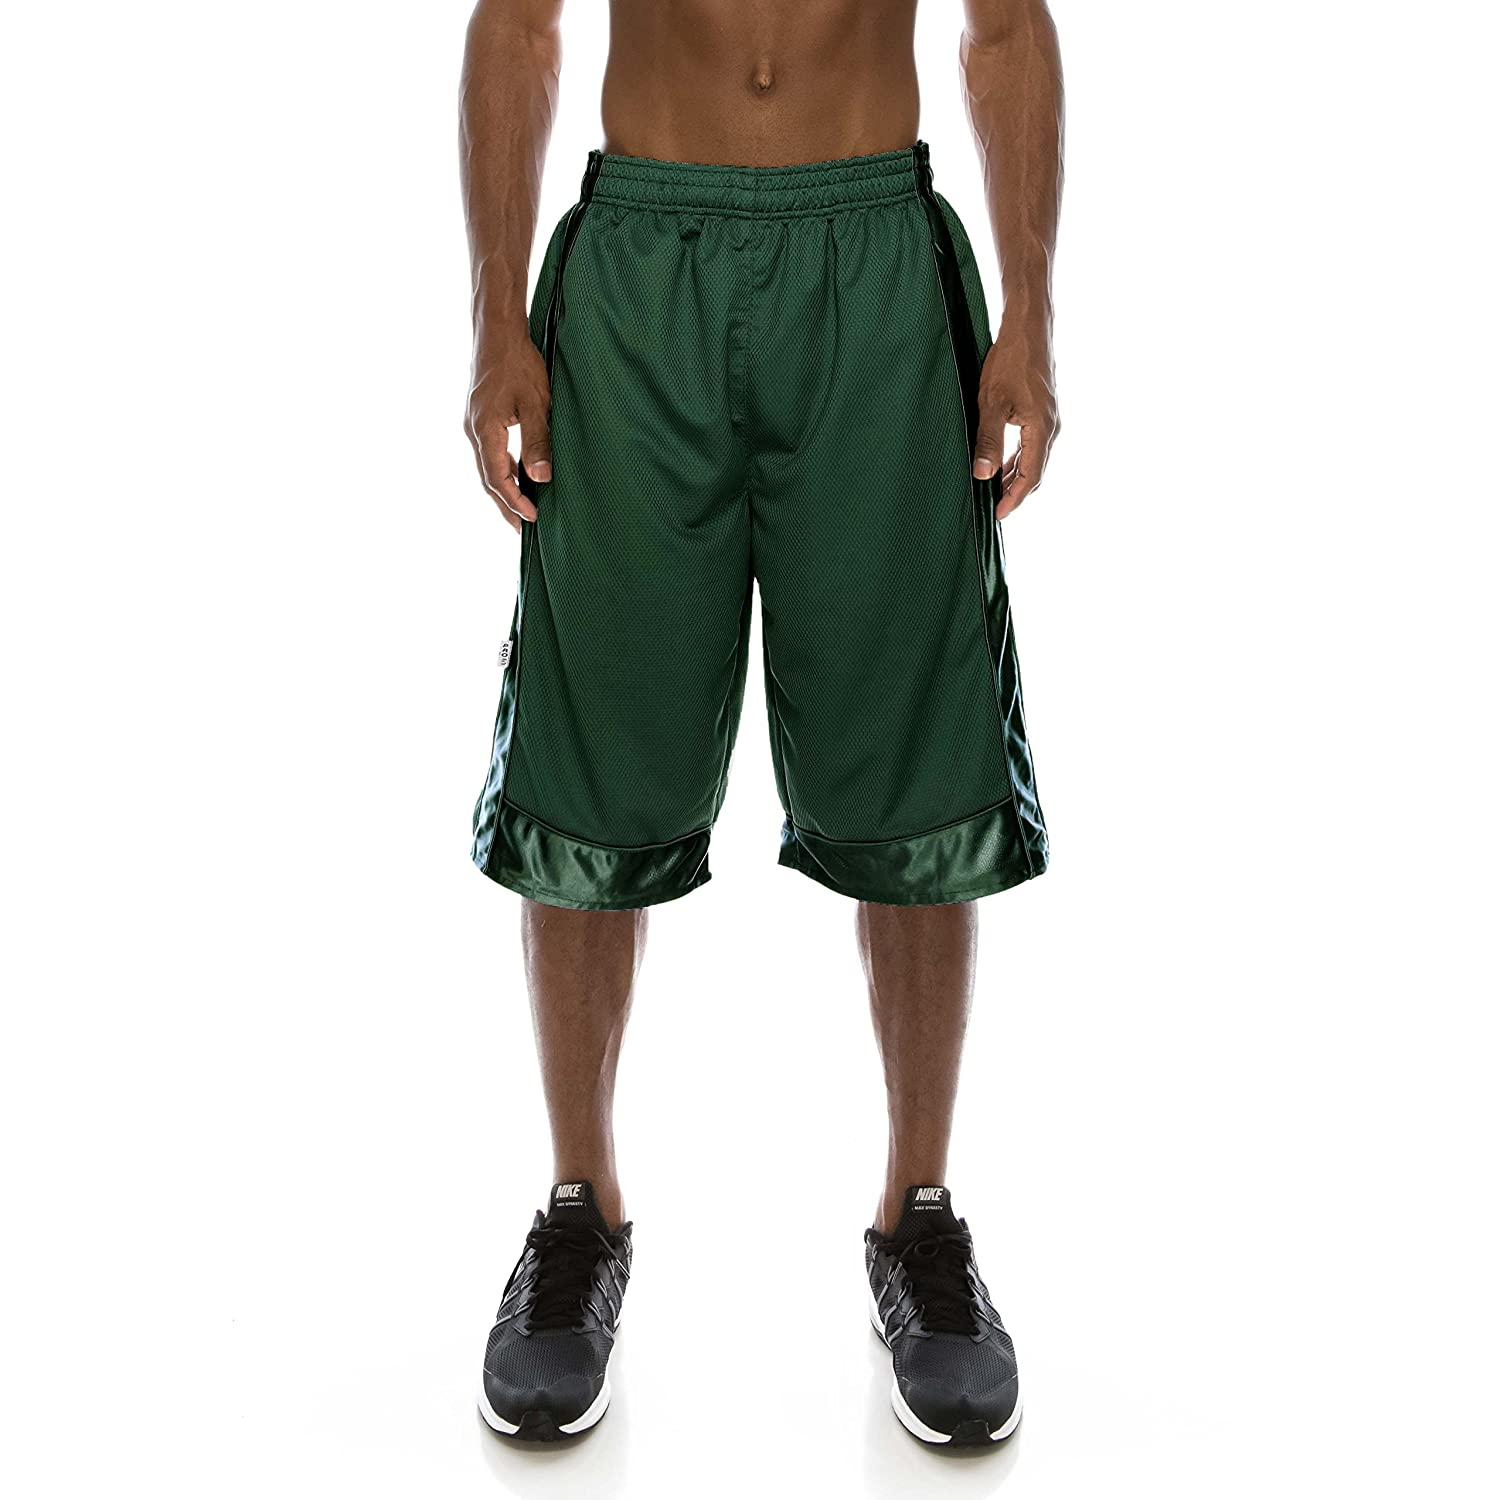 PRO 5 Premium Quality Heavy Mesh Basketball Shorts